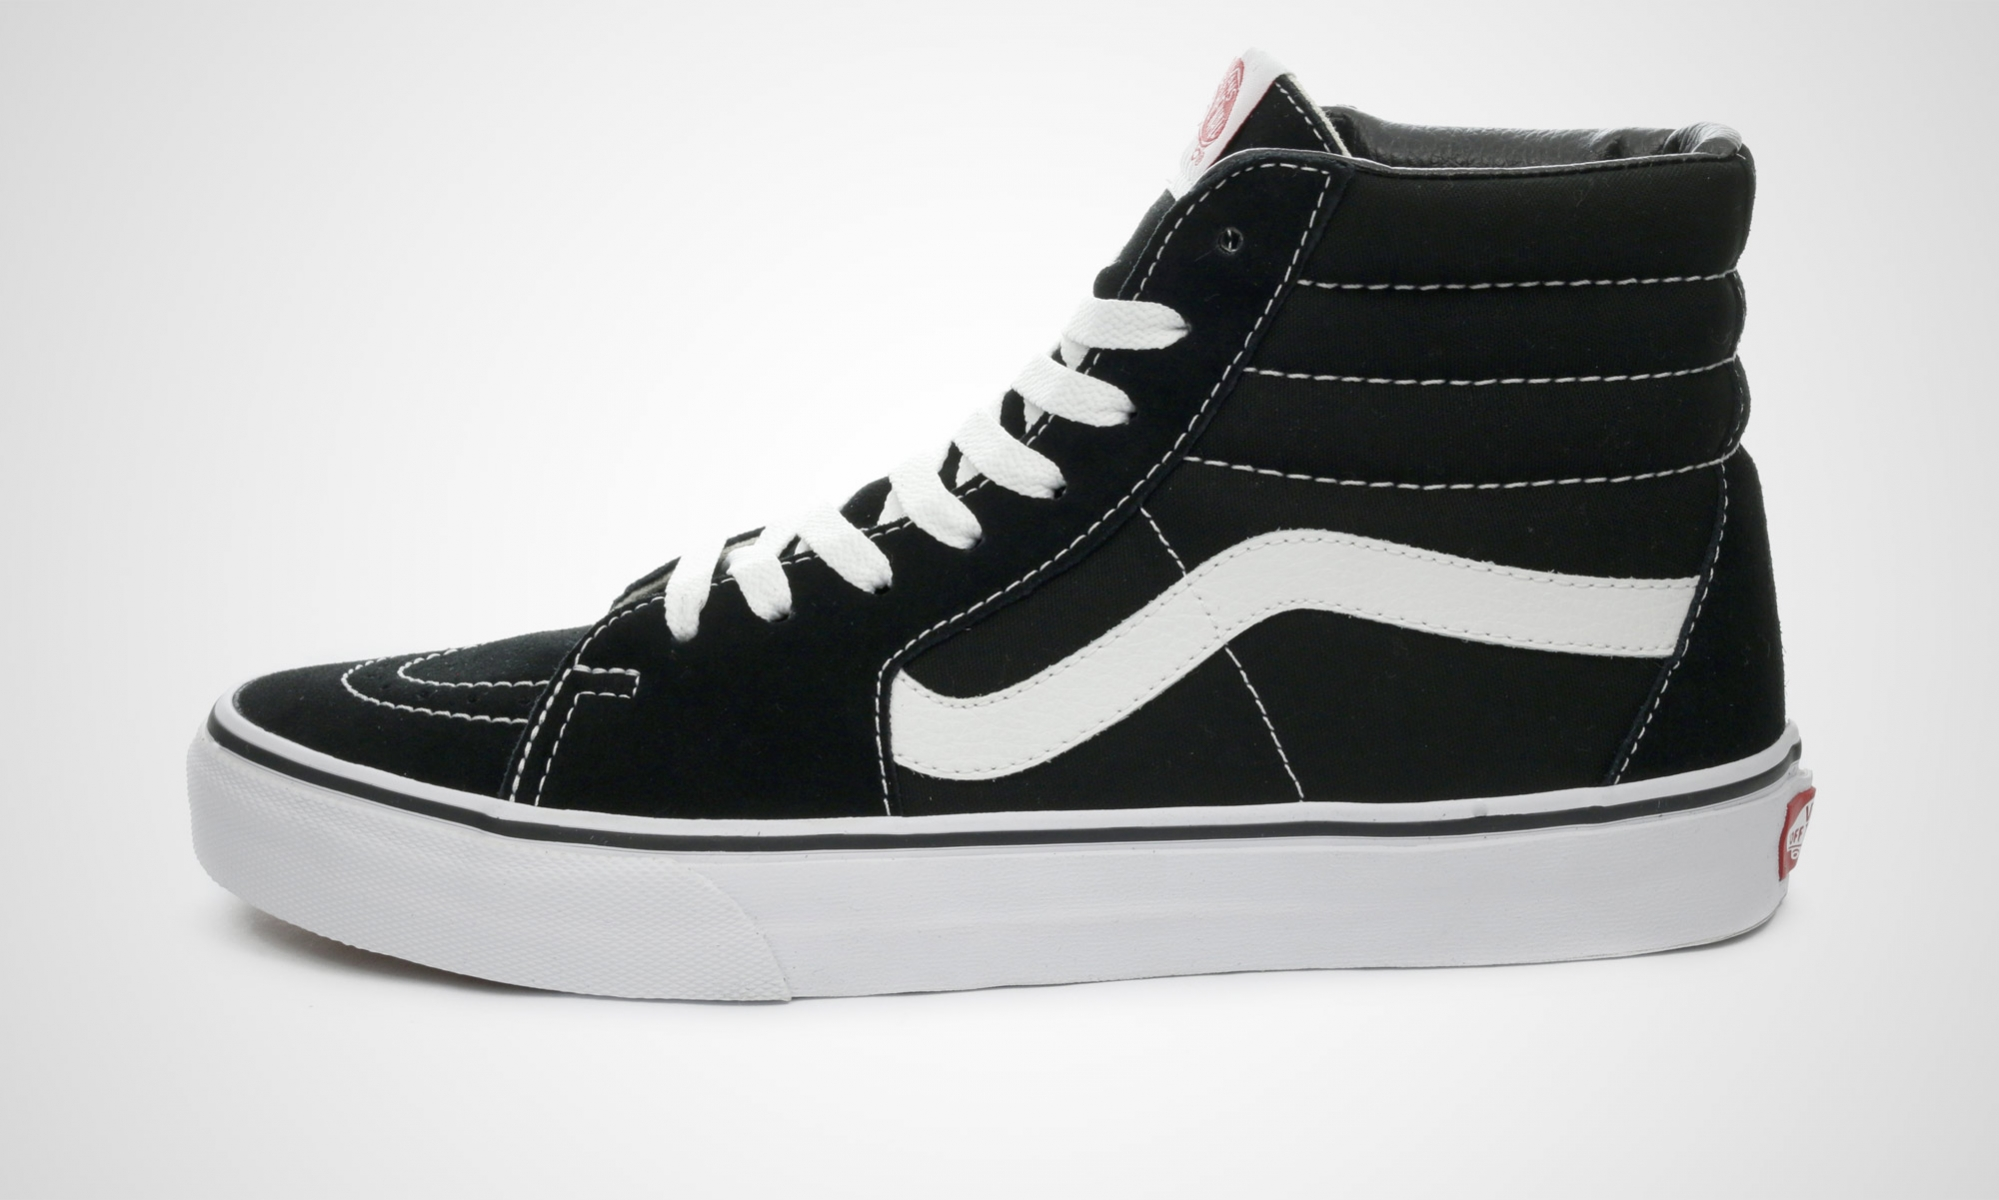 VANS Sneaker – SPORTIVE FOOTWEAR INSPIRED BY SKATING